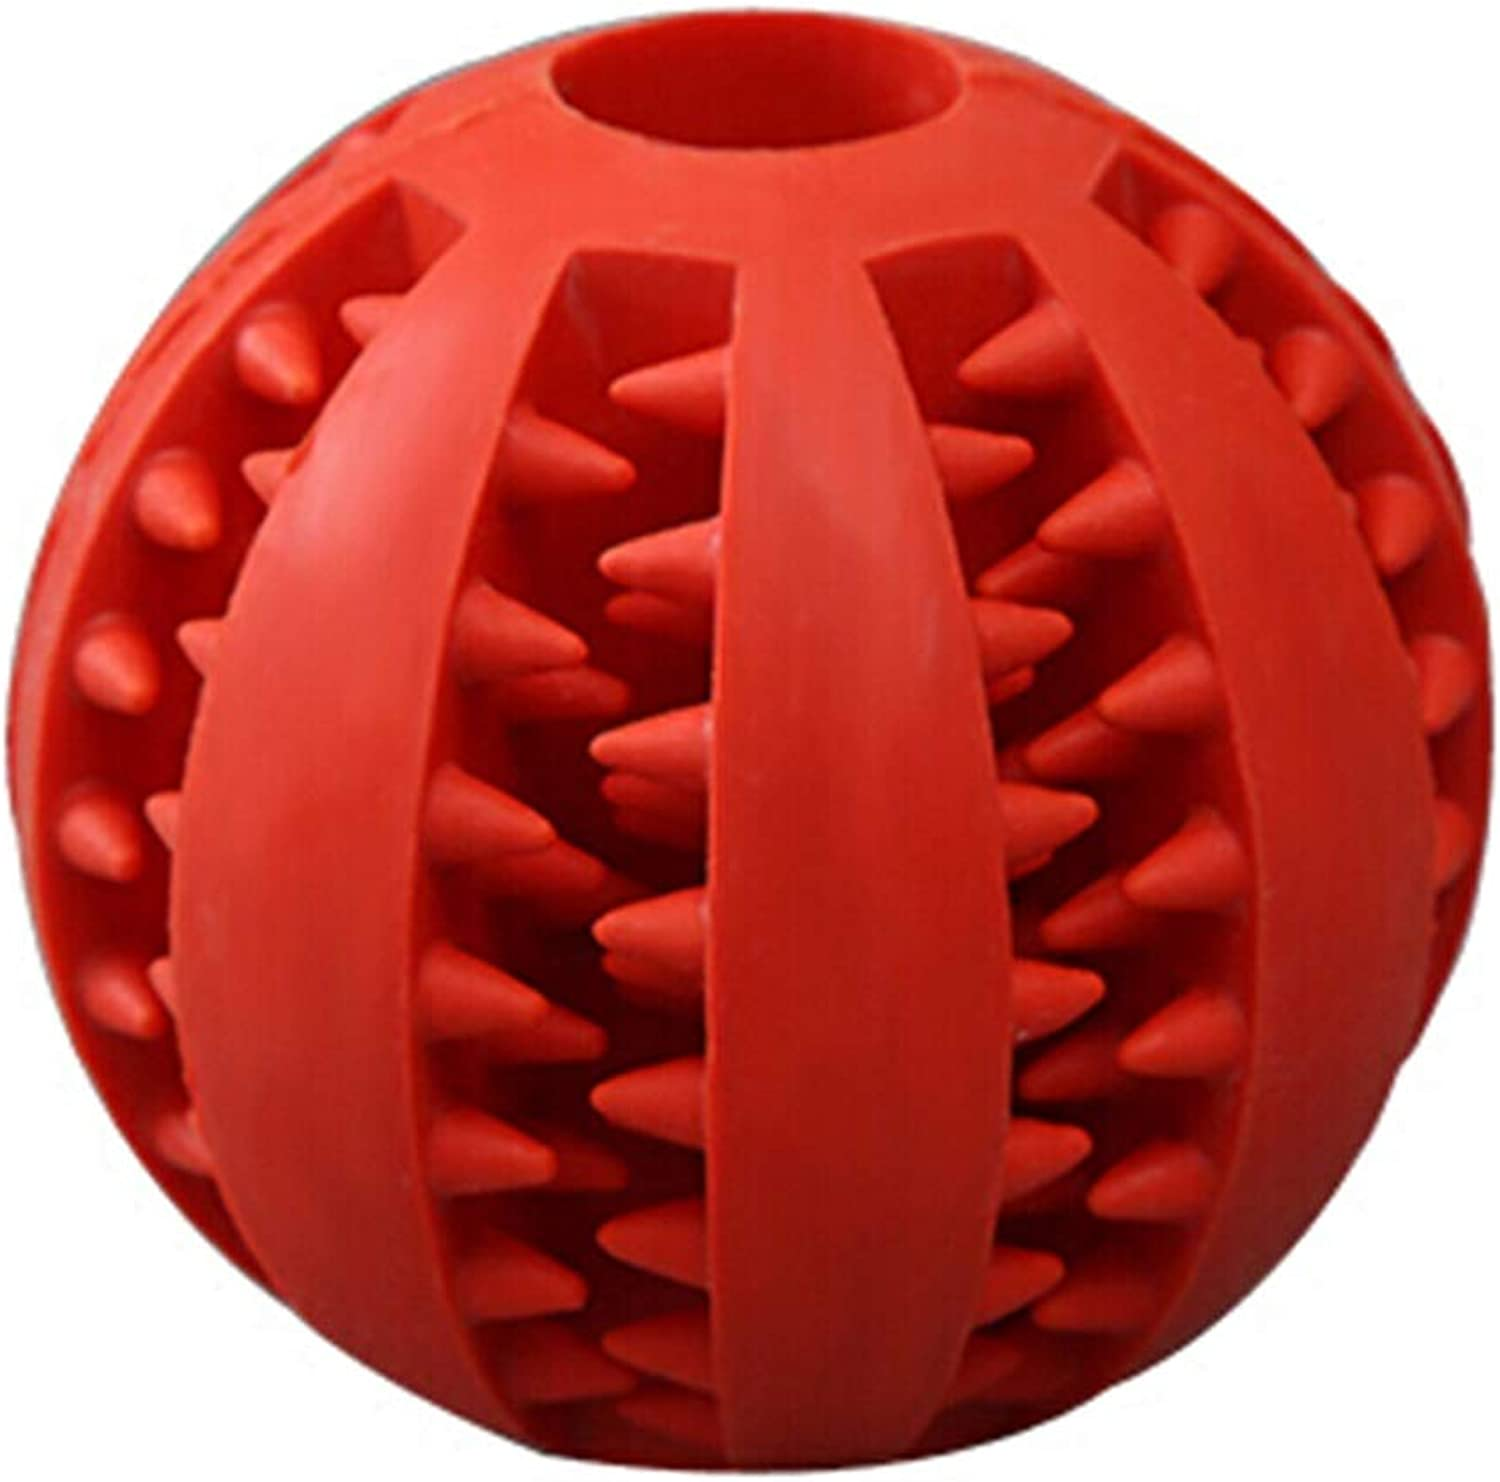 Jiu Si Dog Toys Biting Large Dogs Molars Teeth Elastic Rubber Balls Teddy golden Hair Labrador Pet Training Supplies Watermelon Balls pet Toy (color   Red, Size   5 cm in Diameter)